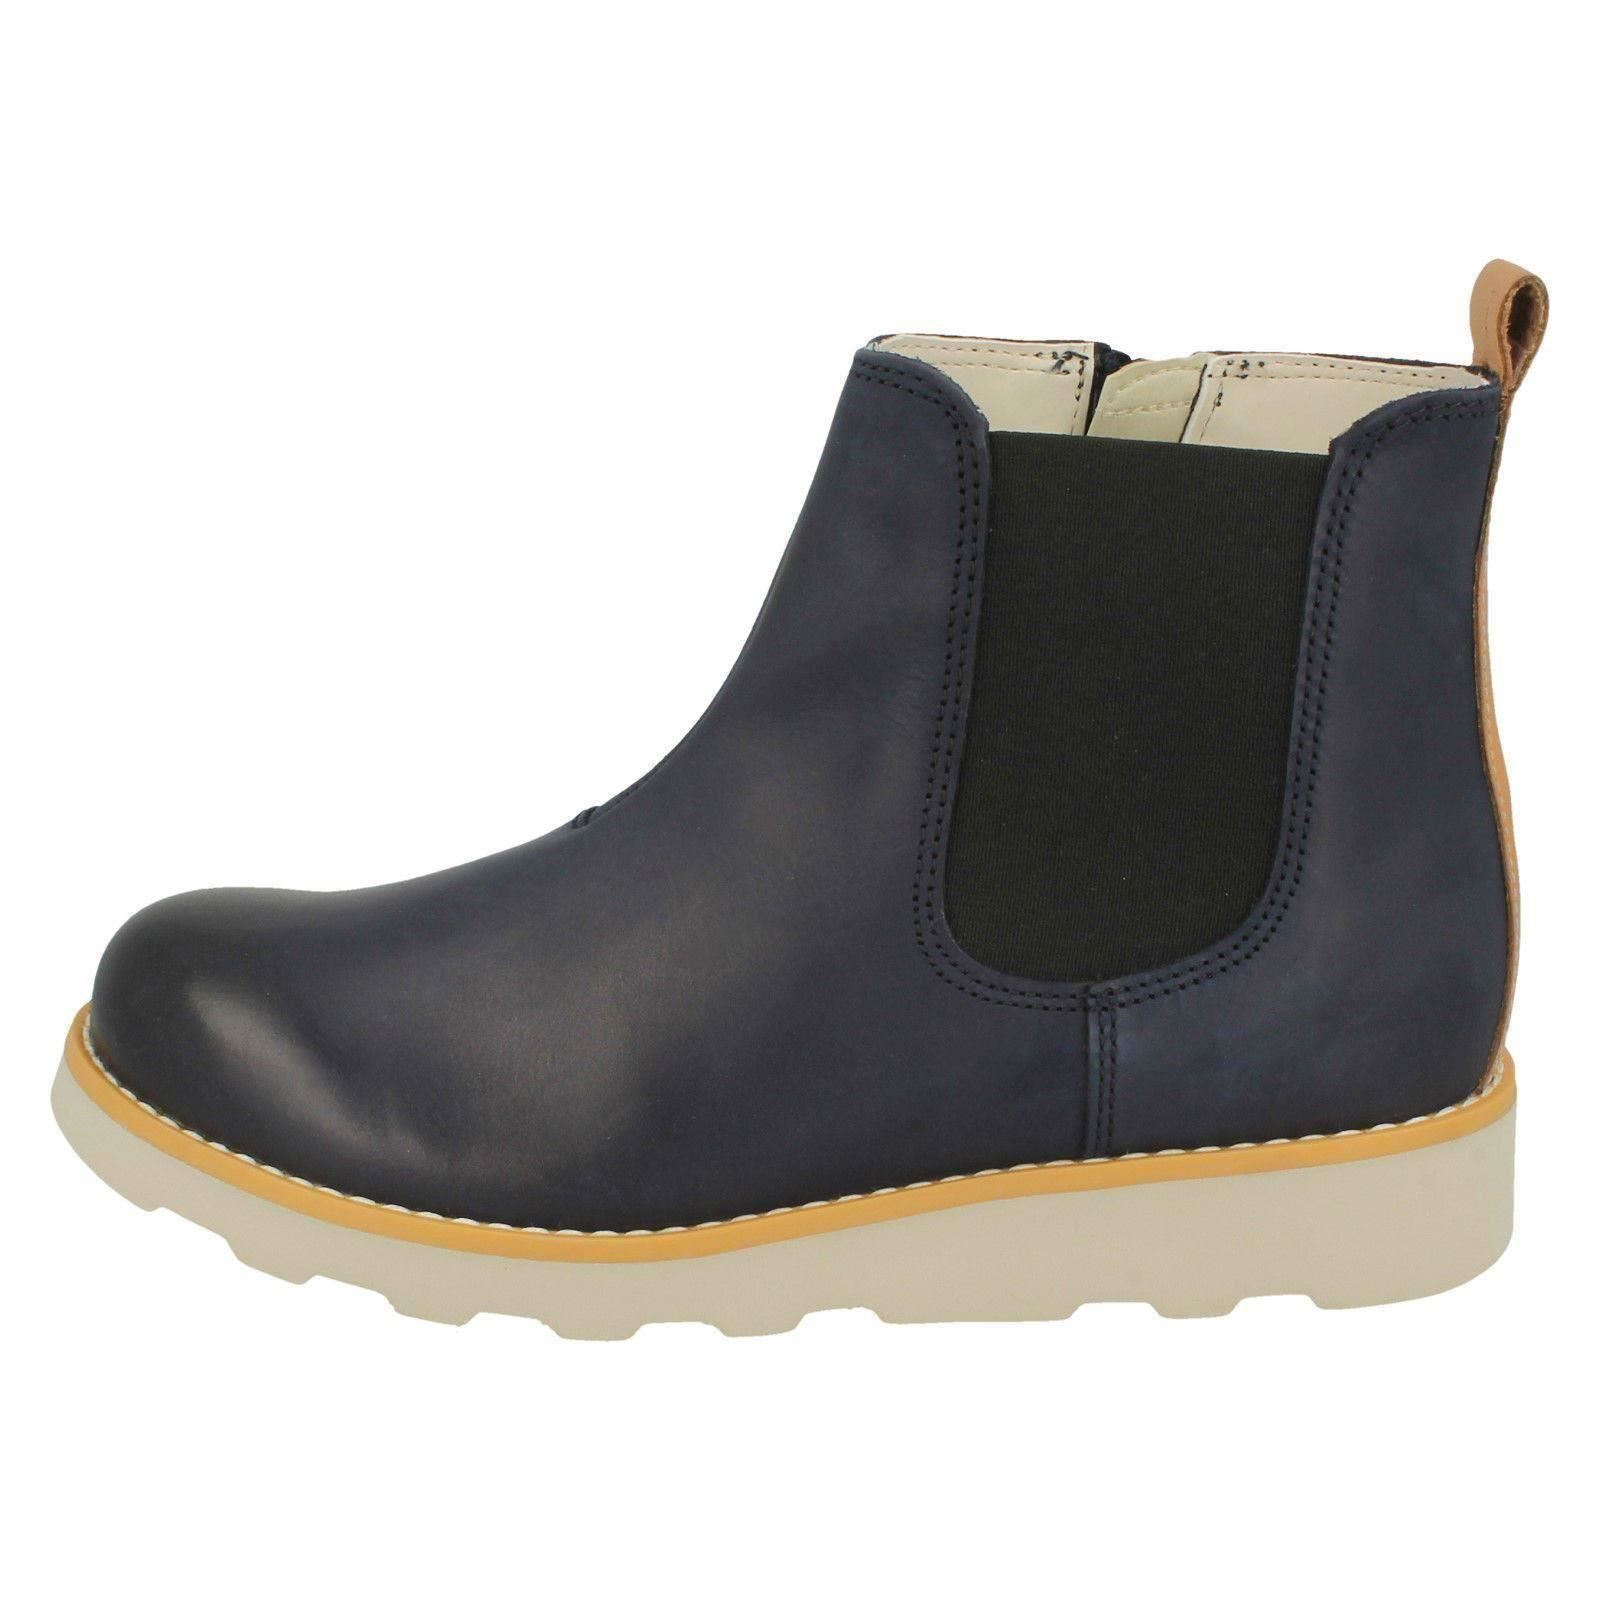 486fb3e0528fe Boys Clarks Gusset Detailed Ankle Boots 'Crown Halo'   eBay